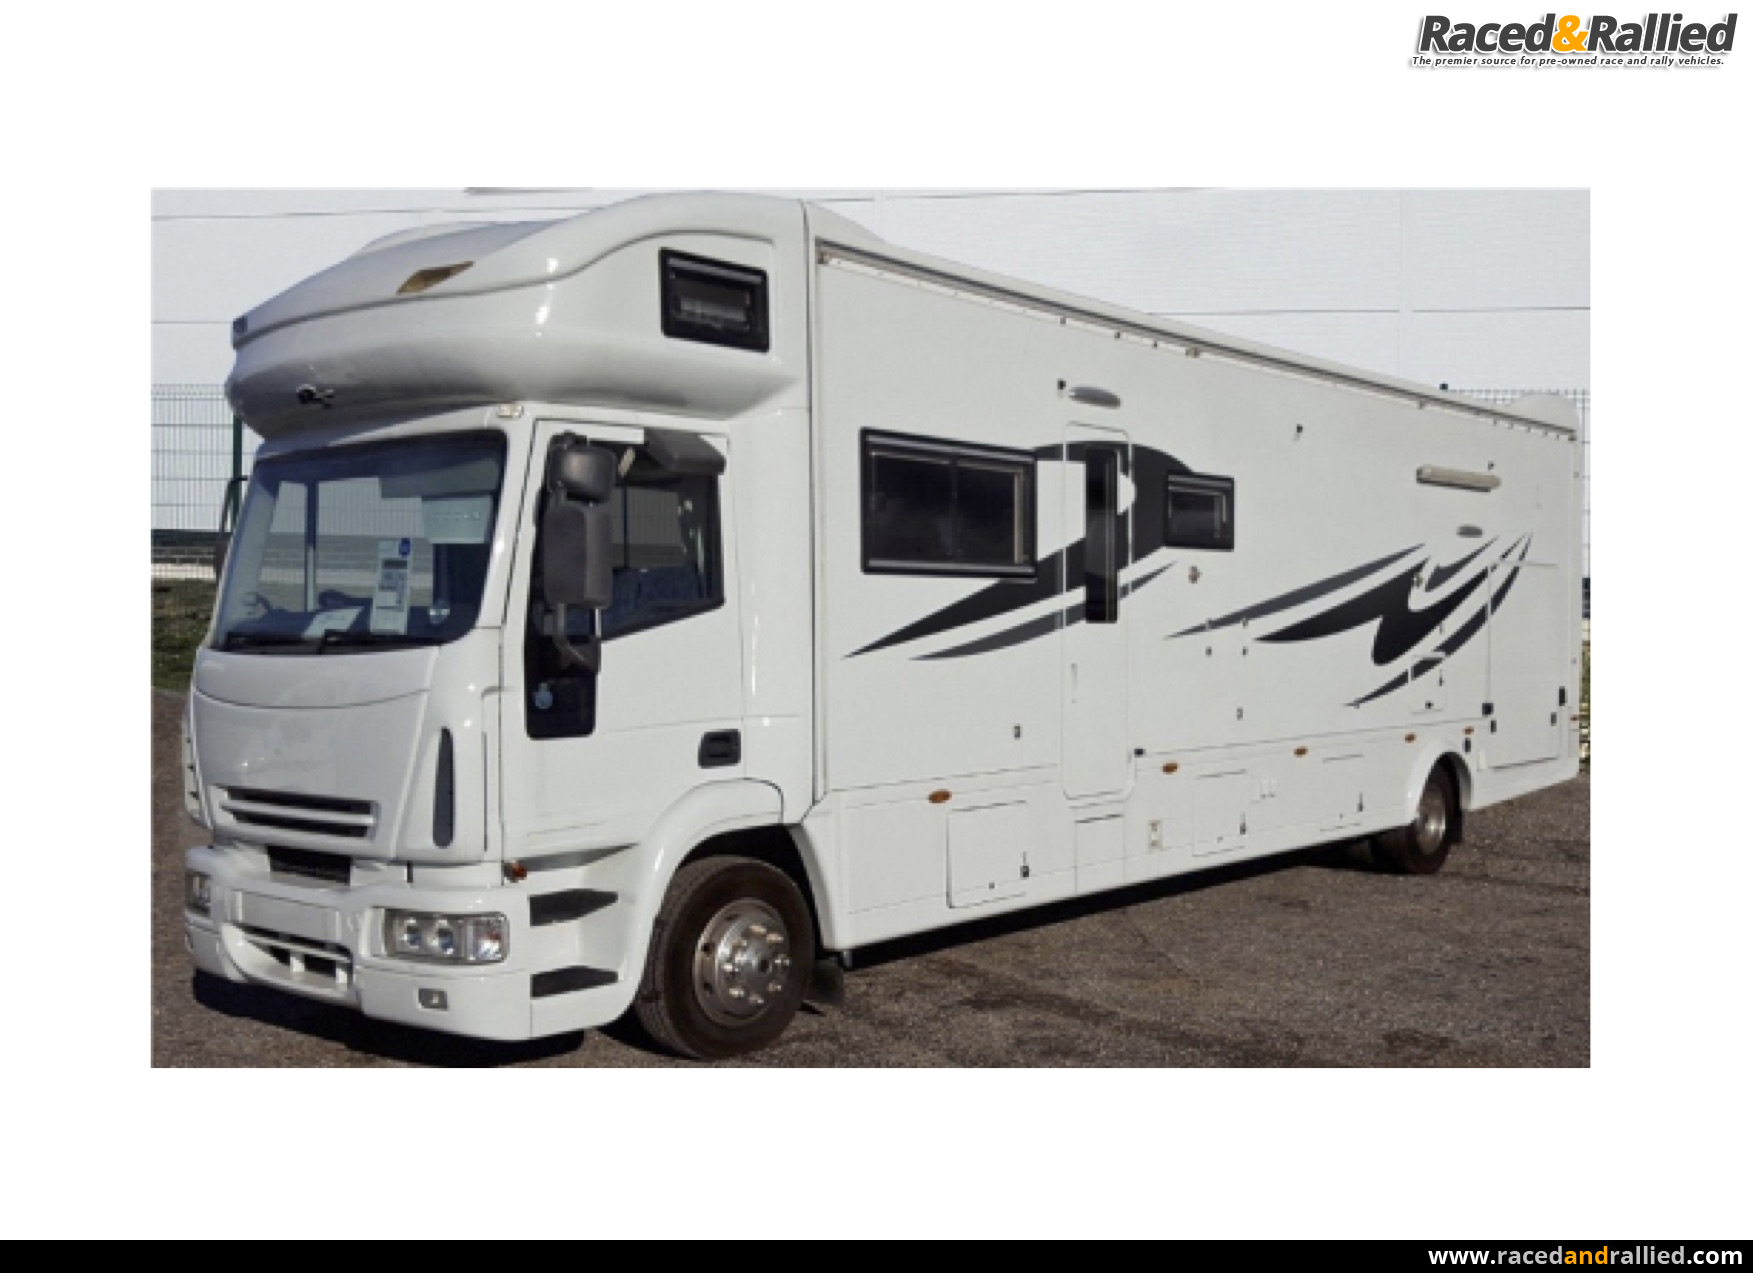 Rs Race Cruiser Motorhome Race Truck Trailers